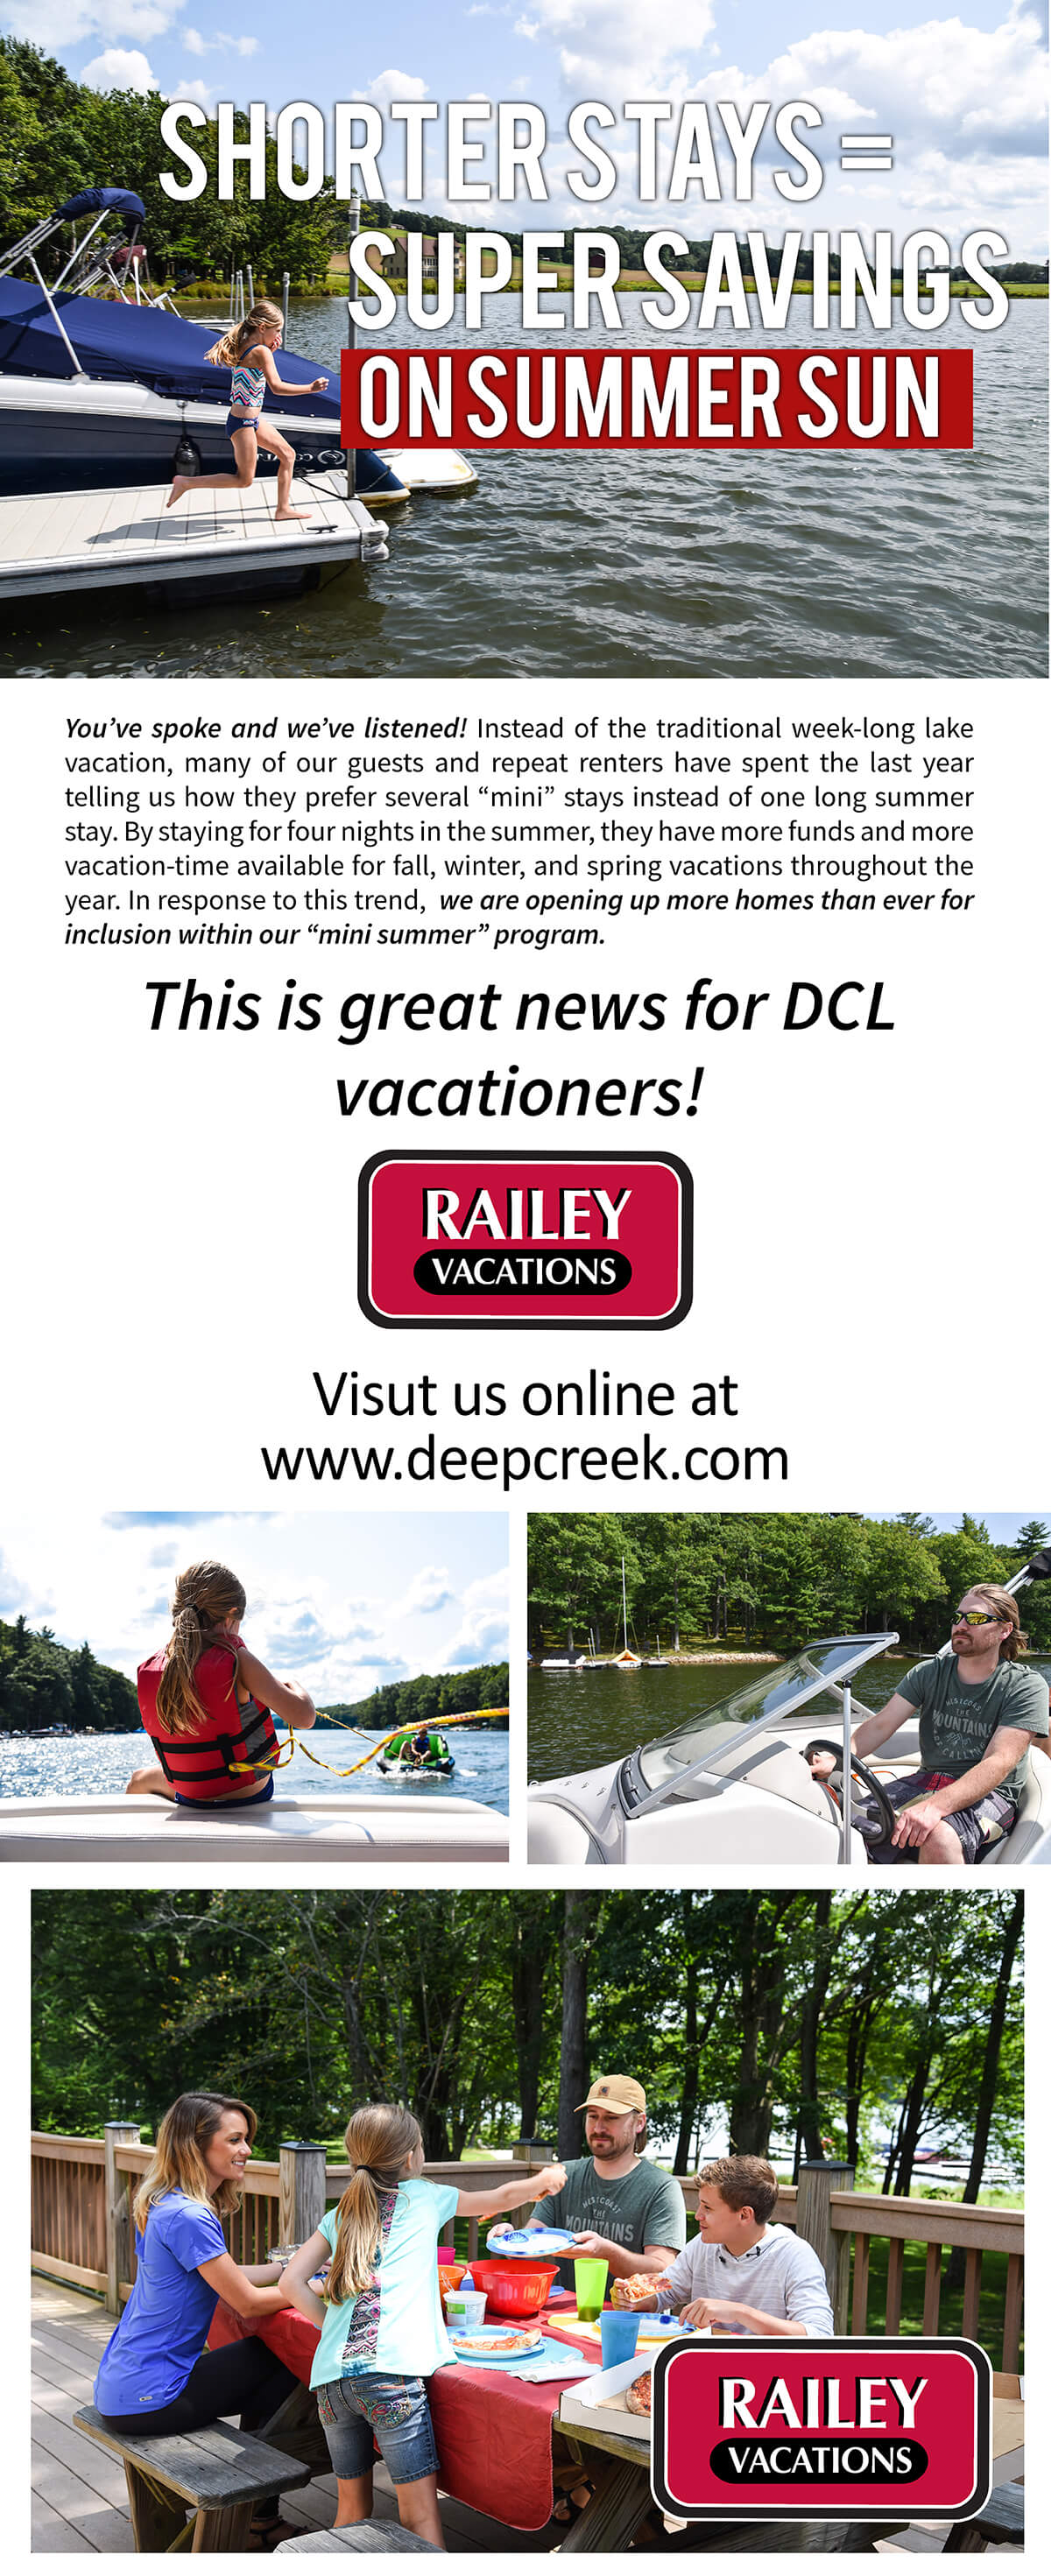 Railey Vacations Deep Creek Lake, MD Spring and Summer Content